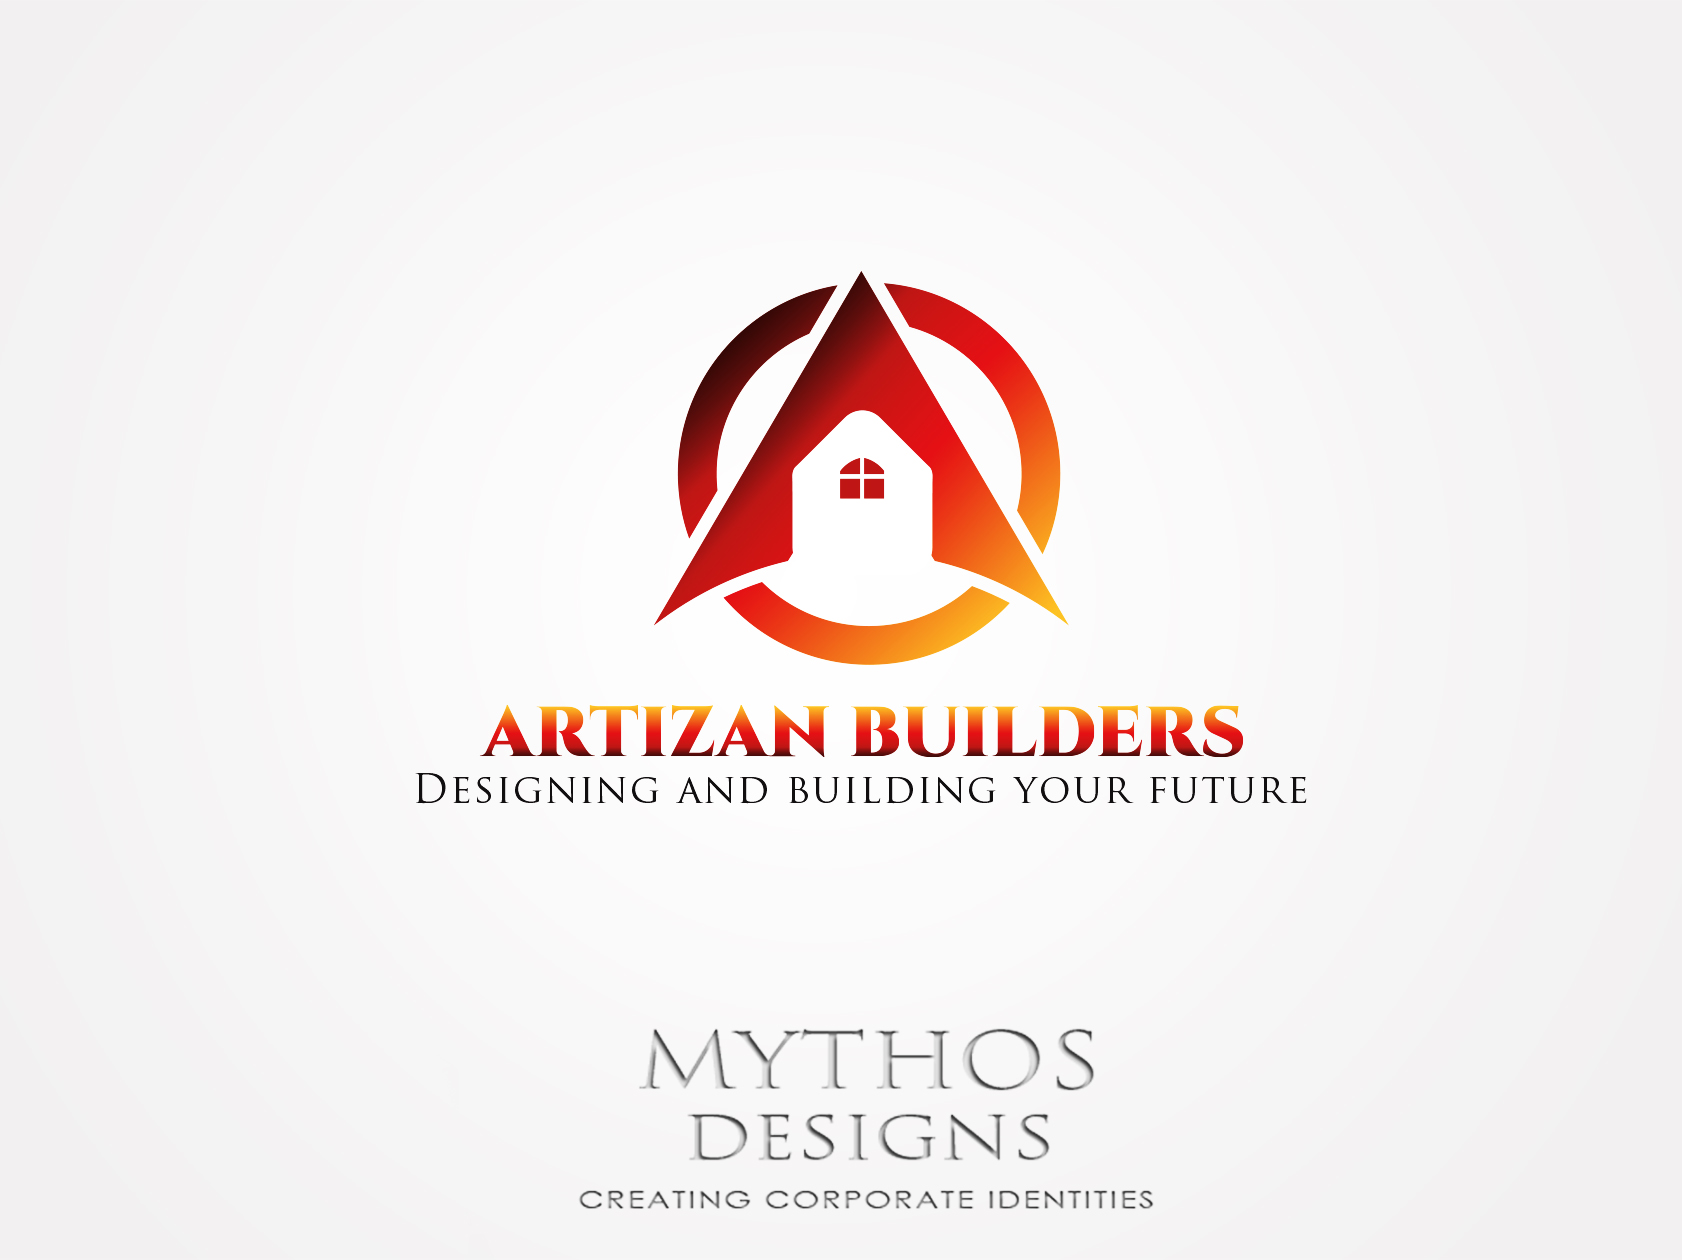 Logo Design by Mythos Designs - Entry No. 189 in the Logo Design Contest Captivating Logo Design for Artisan Builders.